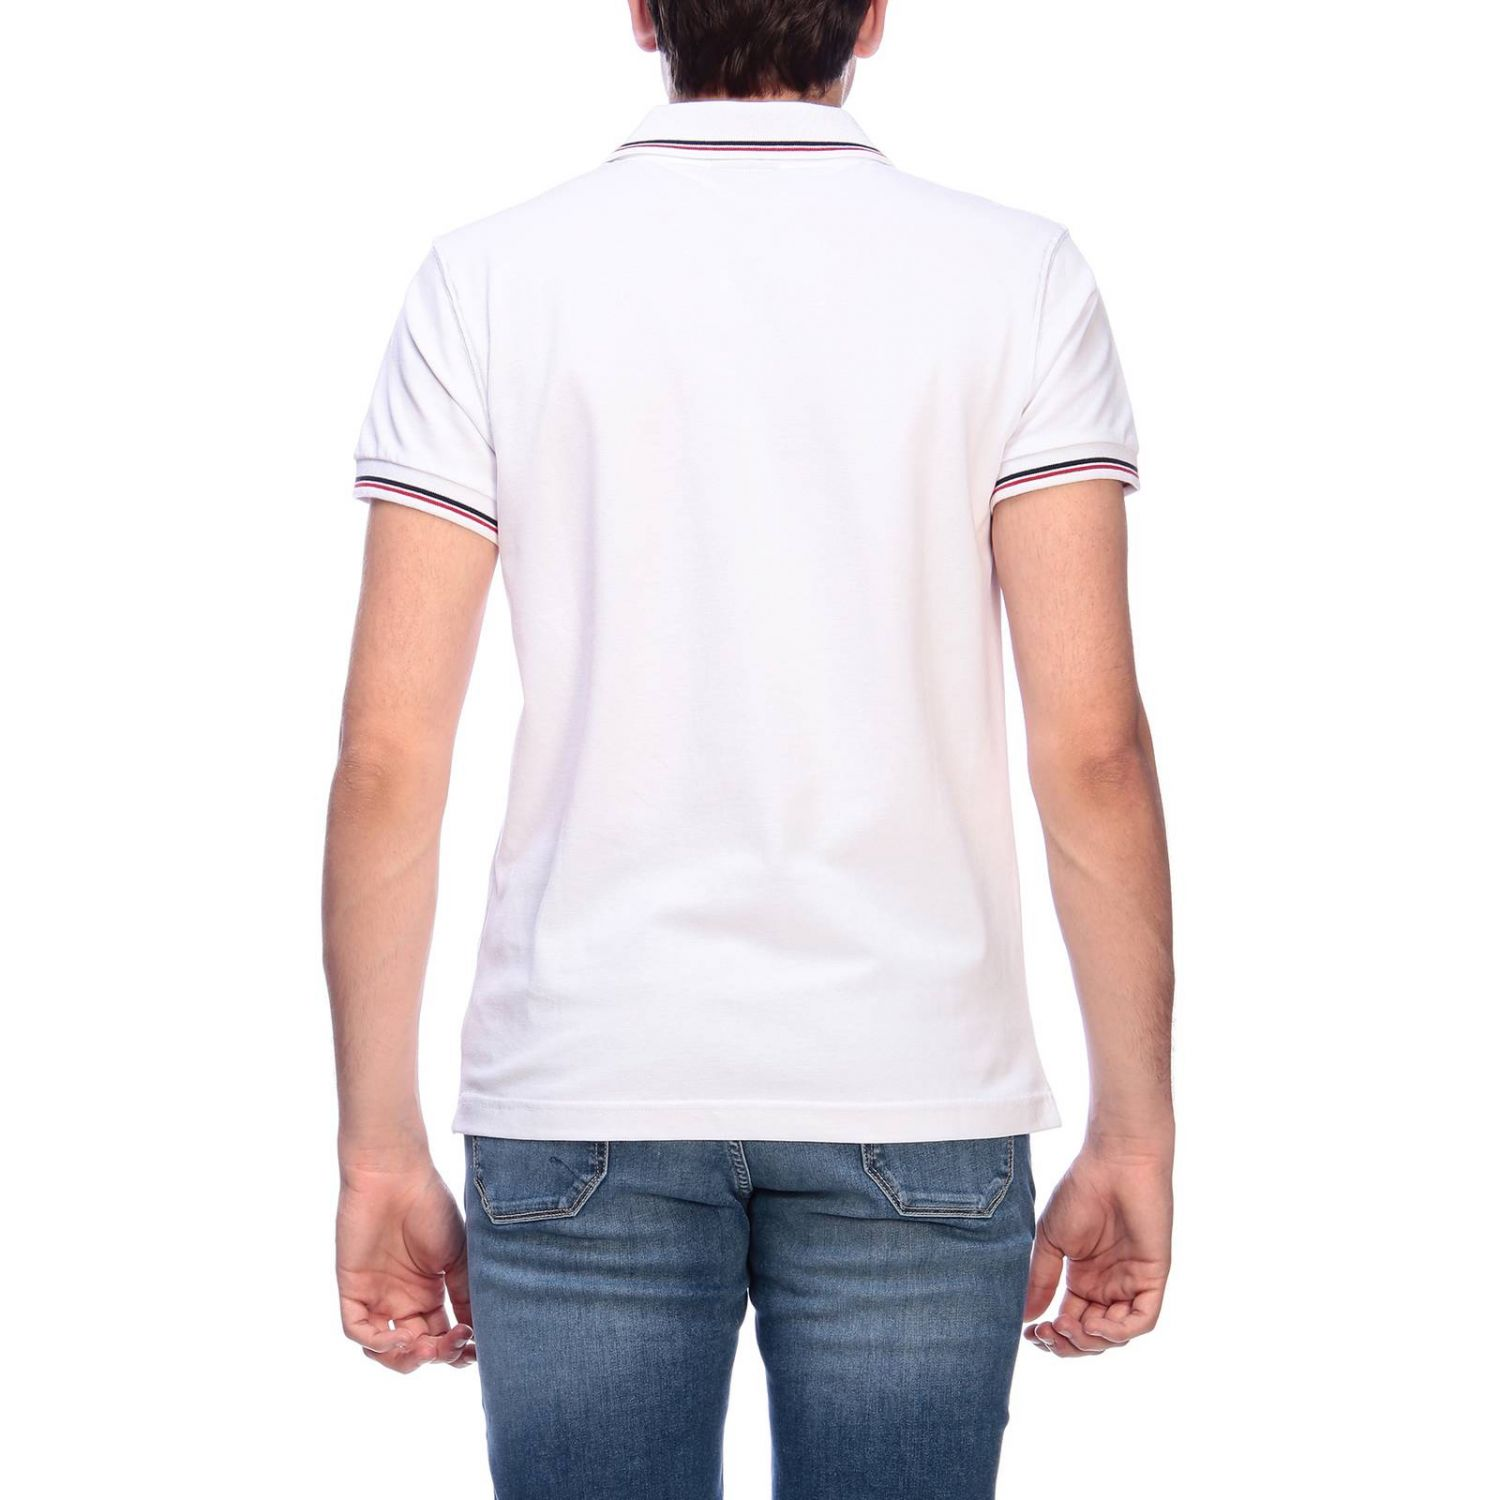 T-shirt men Museum white 3